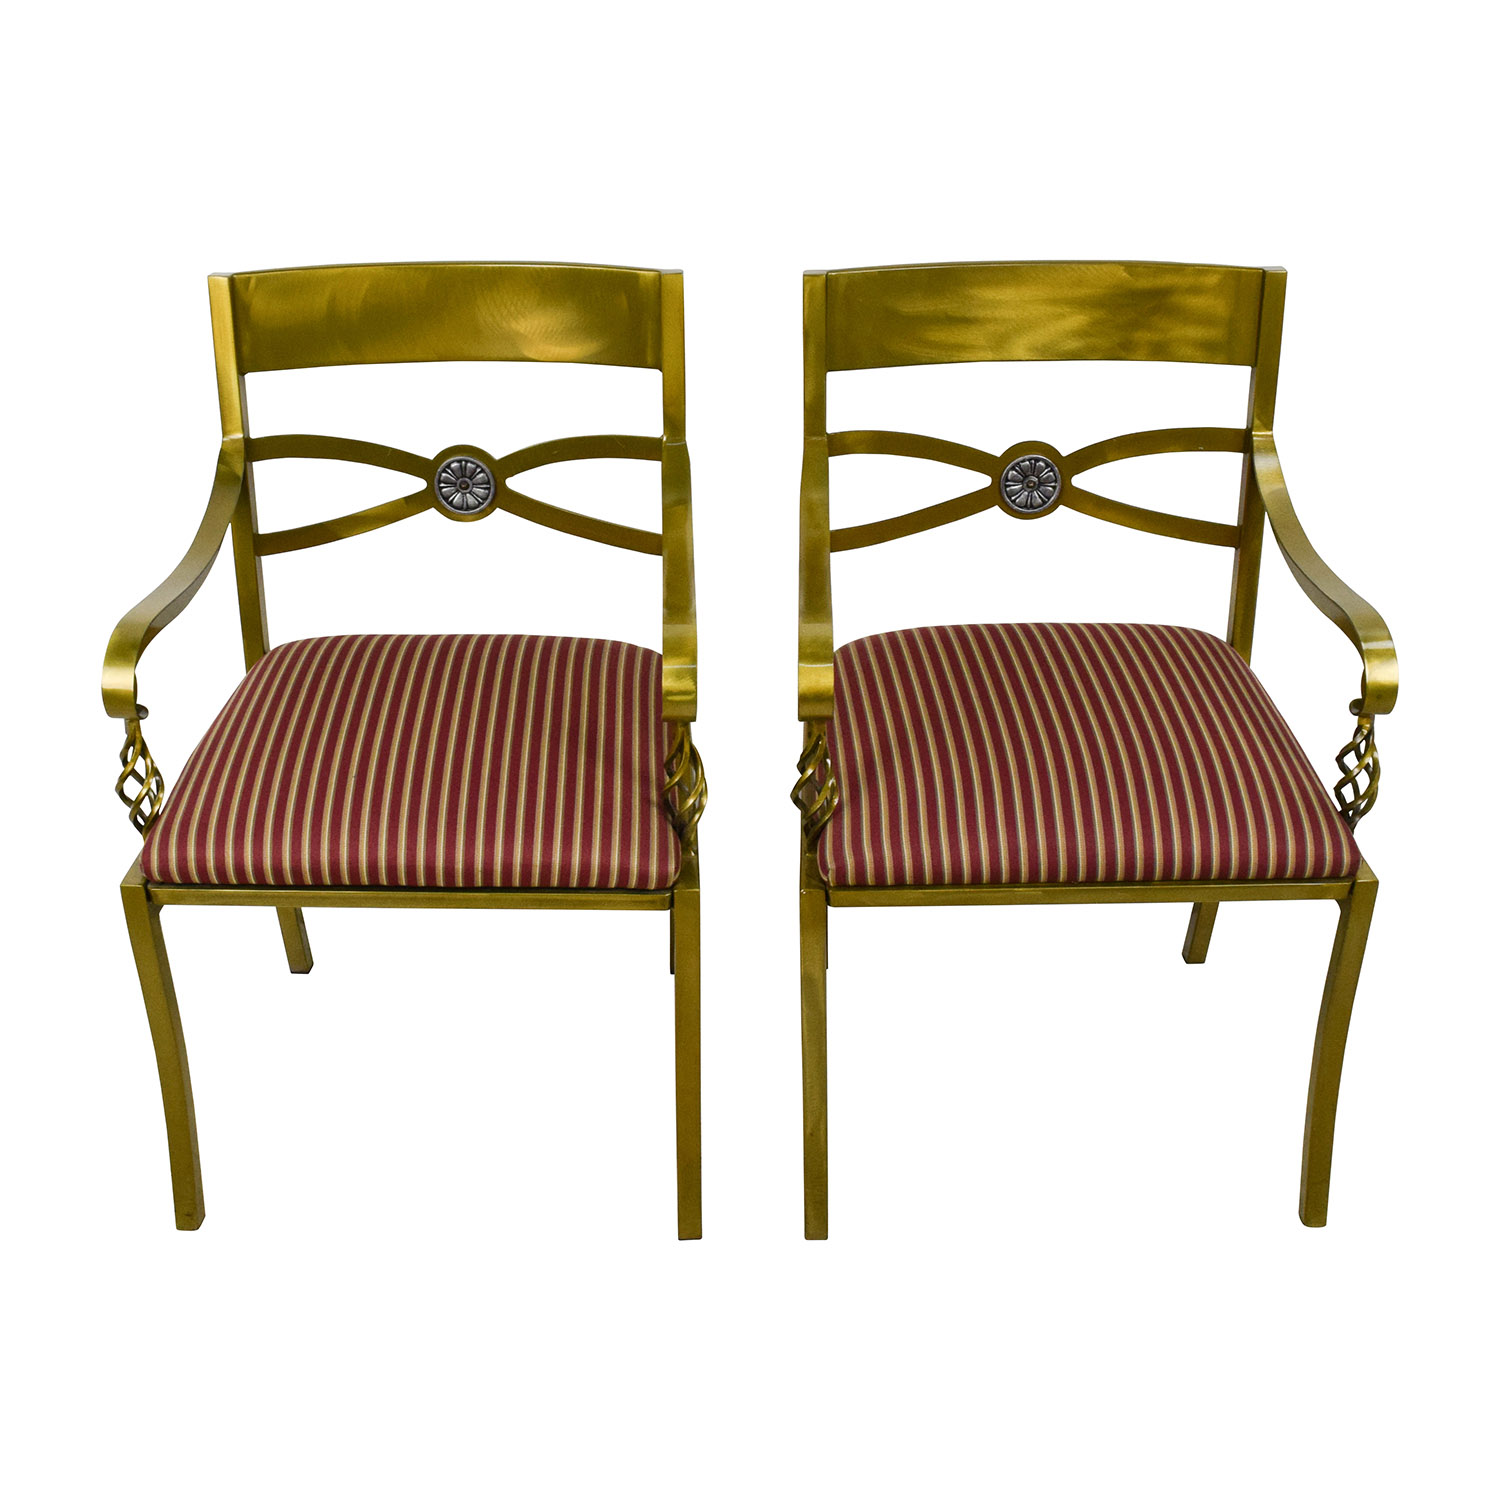 Custom Made Antique Gold Wrought Iron Chairs price